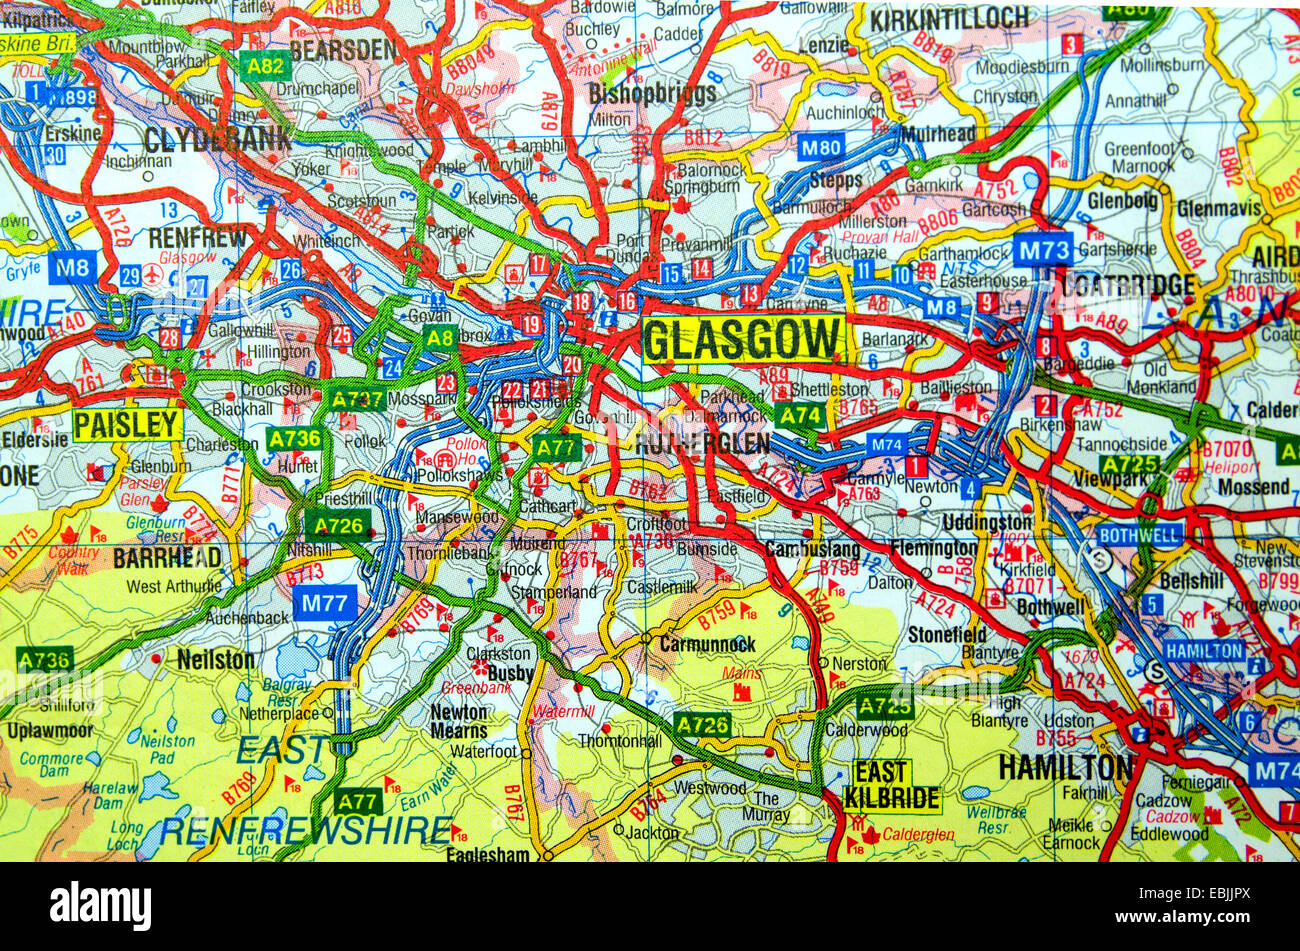 Map Of Glasgow Scotland Road Map of Glasgow, Scotland Stock Photo: 76012578   Alamy